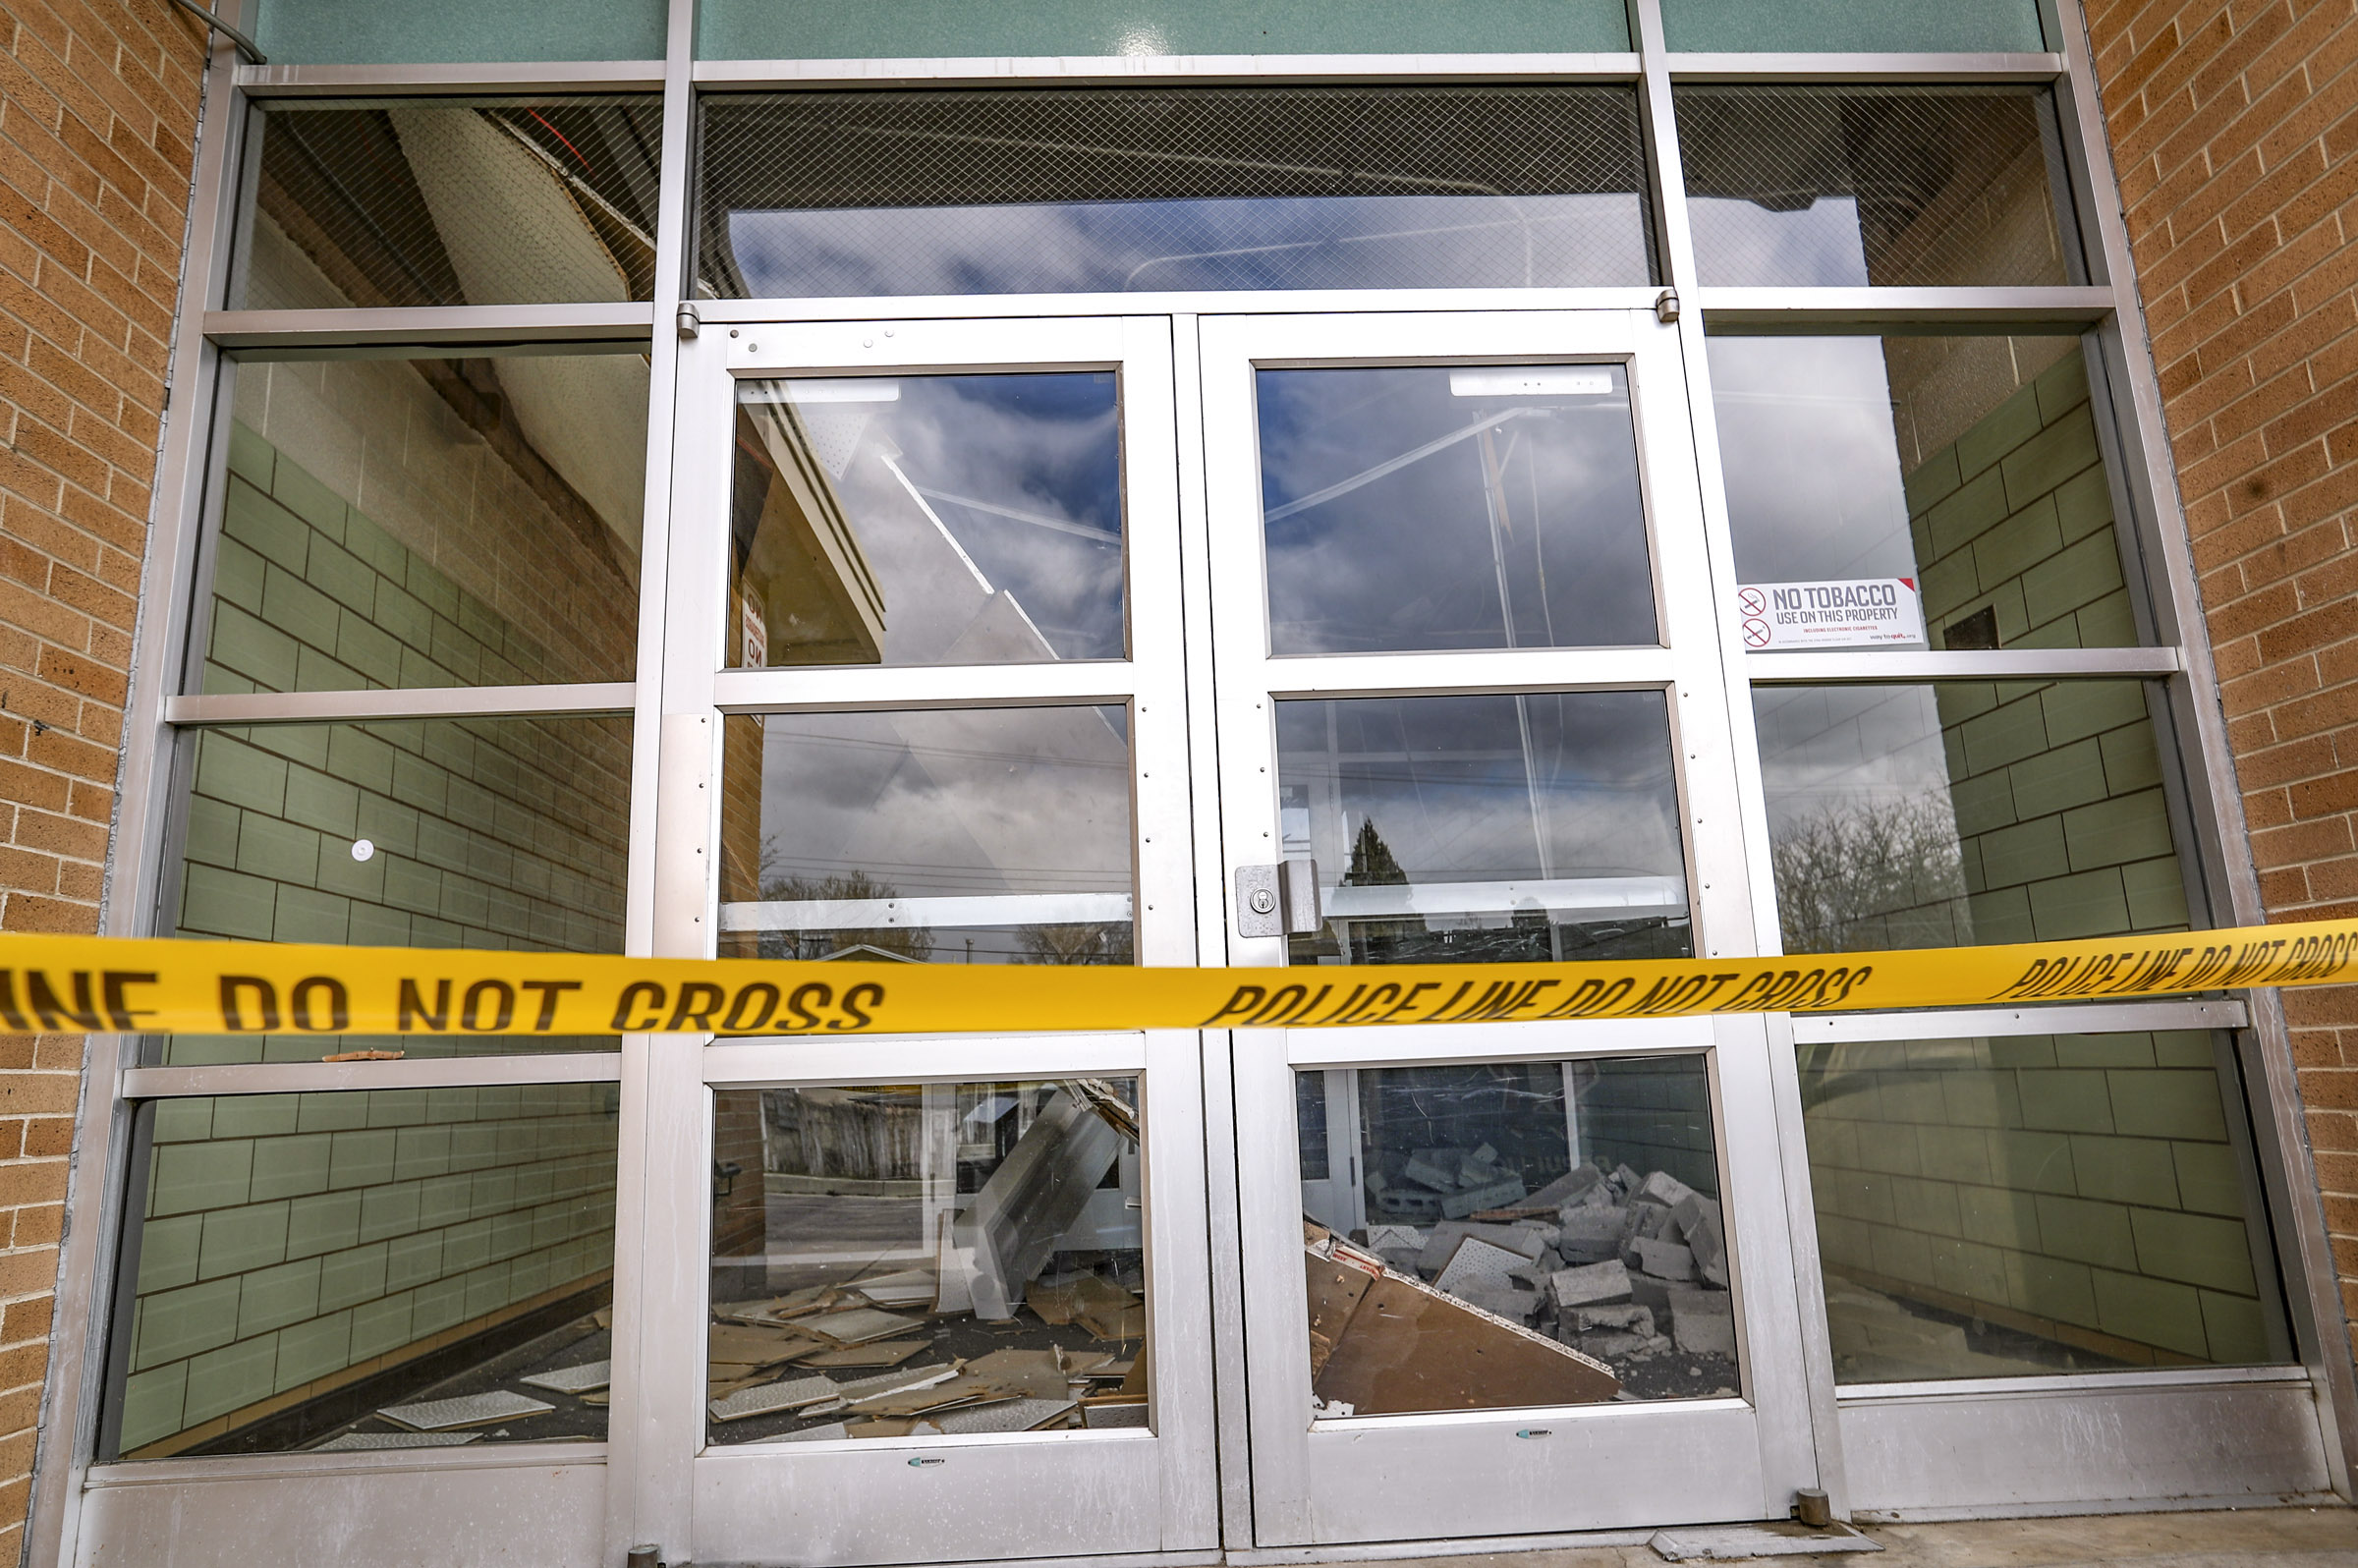 Damage to a ceiling inside West Lake STEM Junior High School in West Valley City is pictured on Tuesday, March 31, 2020. The damage was caused by a 5.7 magnitude earthquake that was centered near Magna on March 18.